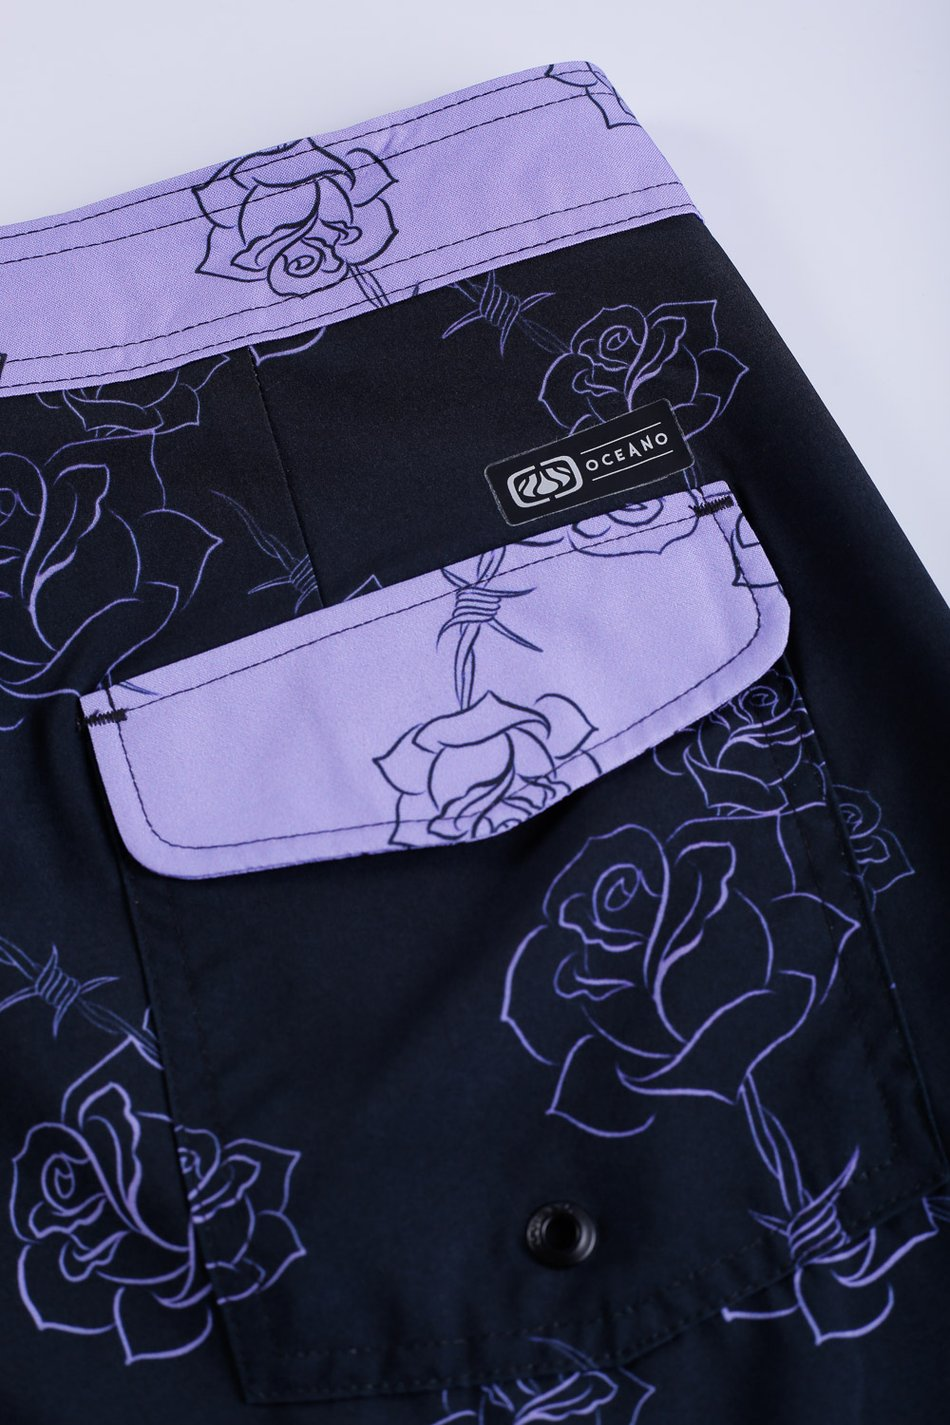 BERMUDA BOARDSHORT ROSAS COLLAB HEDI PERFORMANCE RETRÔ